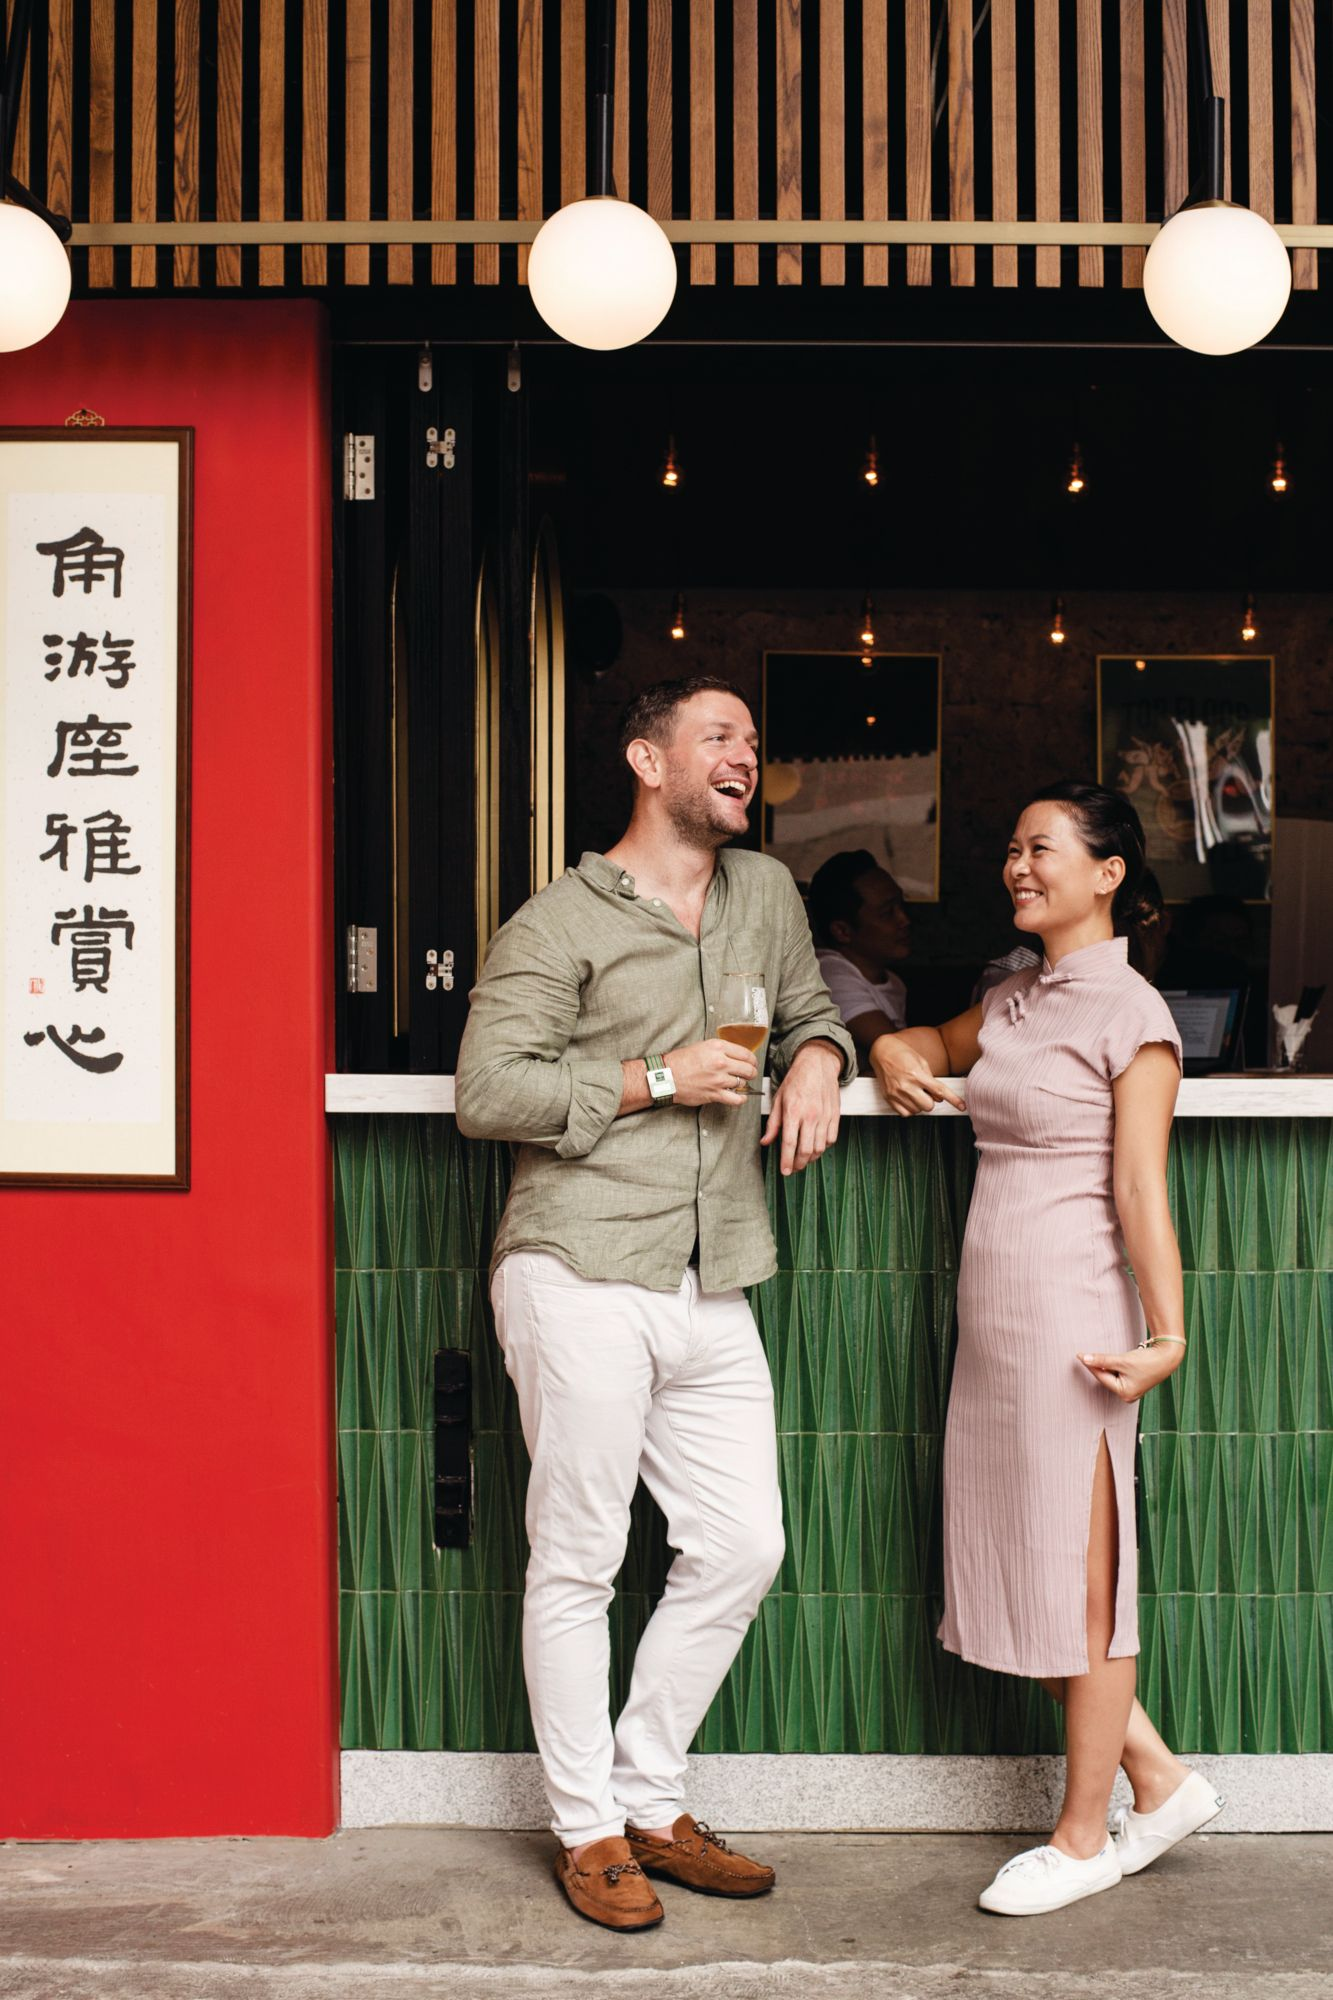 Laszlo and Michele Raphael On Opening Their First Bar Moonkok And The Best Places To Eat And Drink In Kowloon